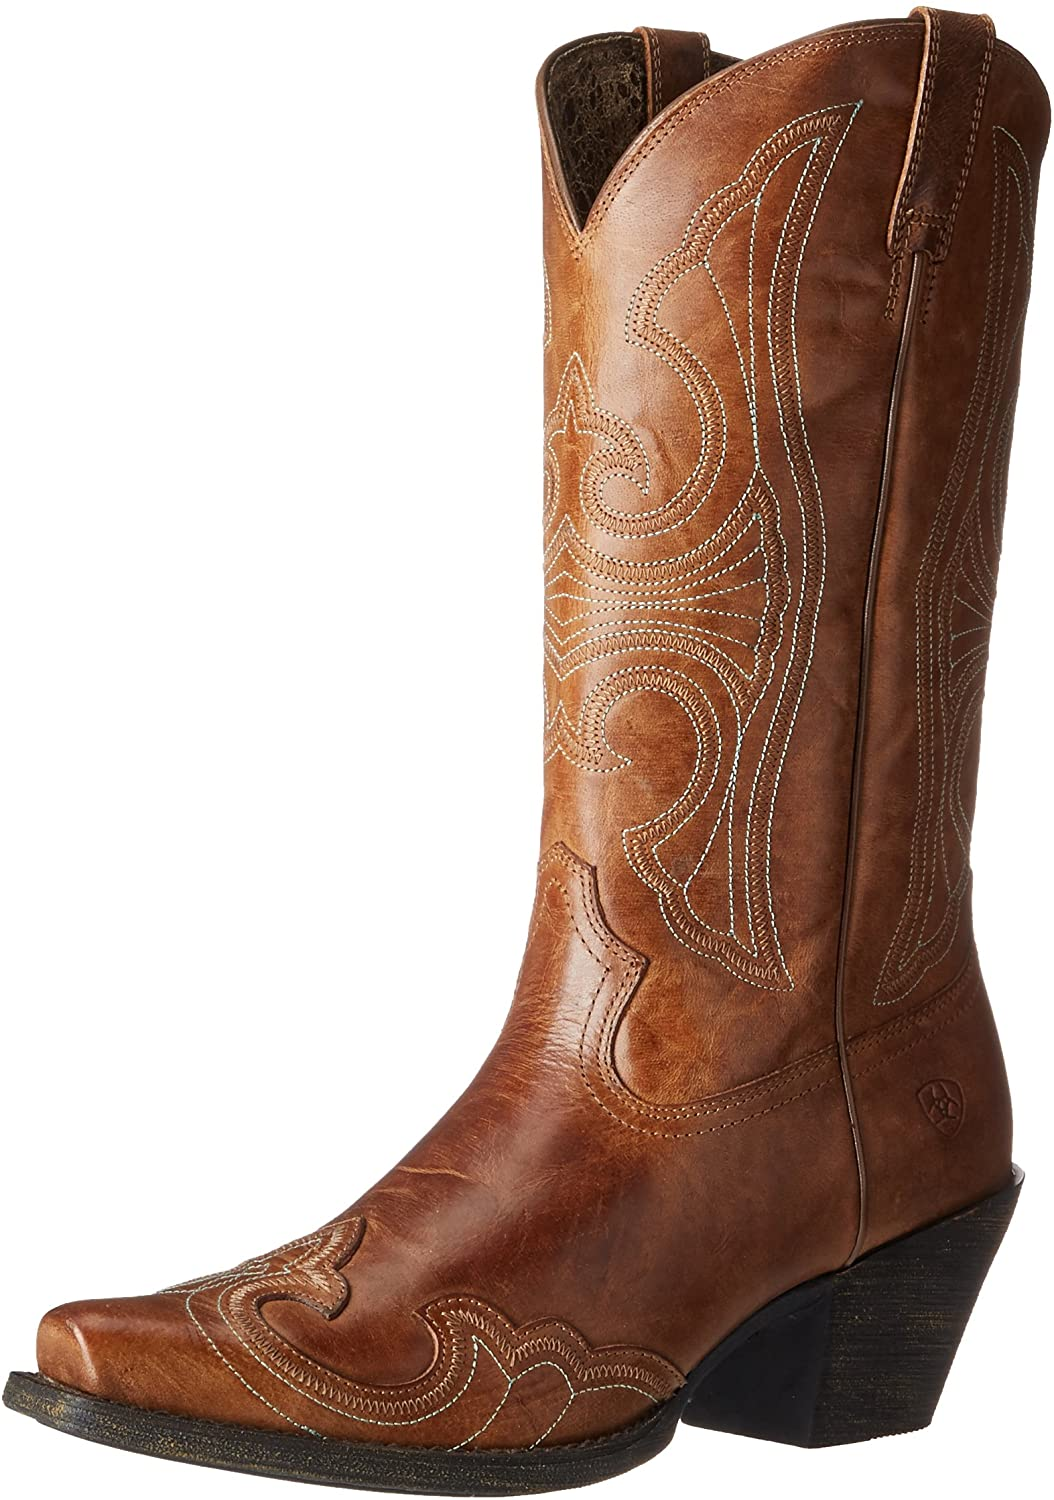 Ariat Round Up Sandsturm Stiefel Snip Toe